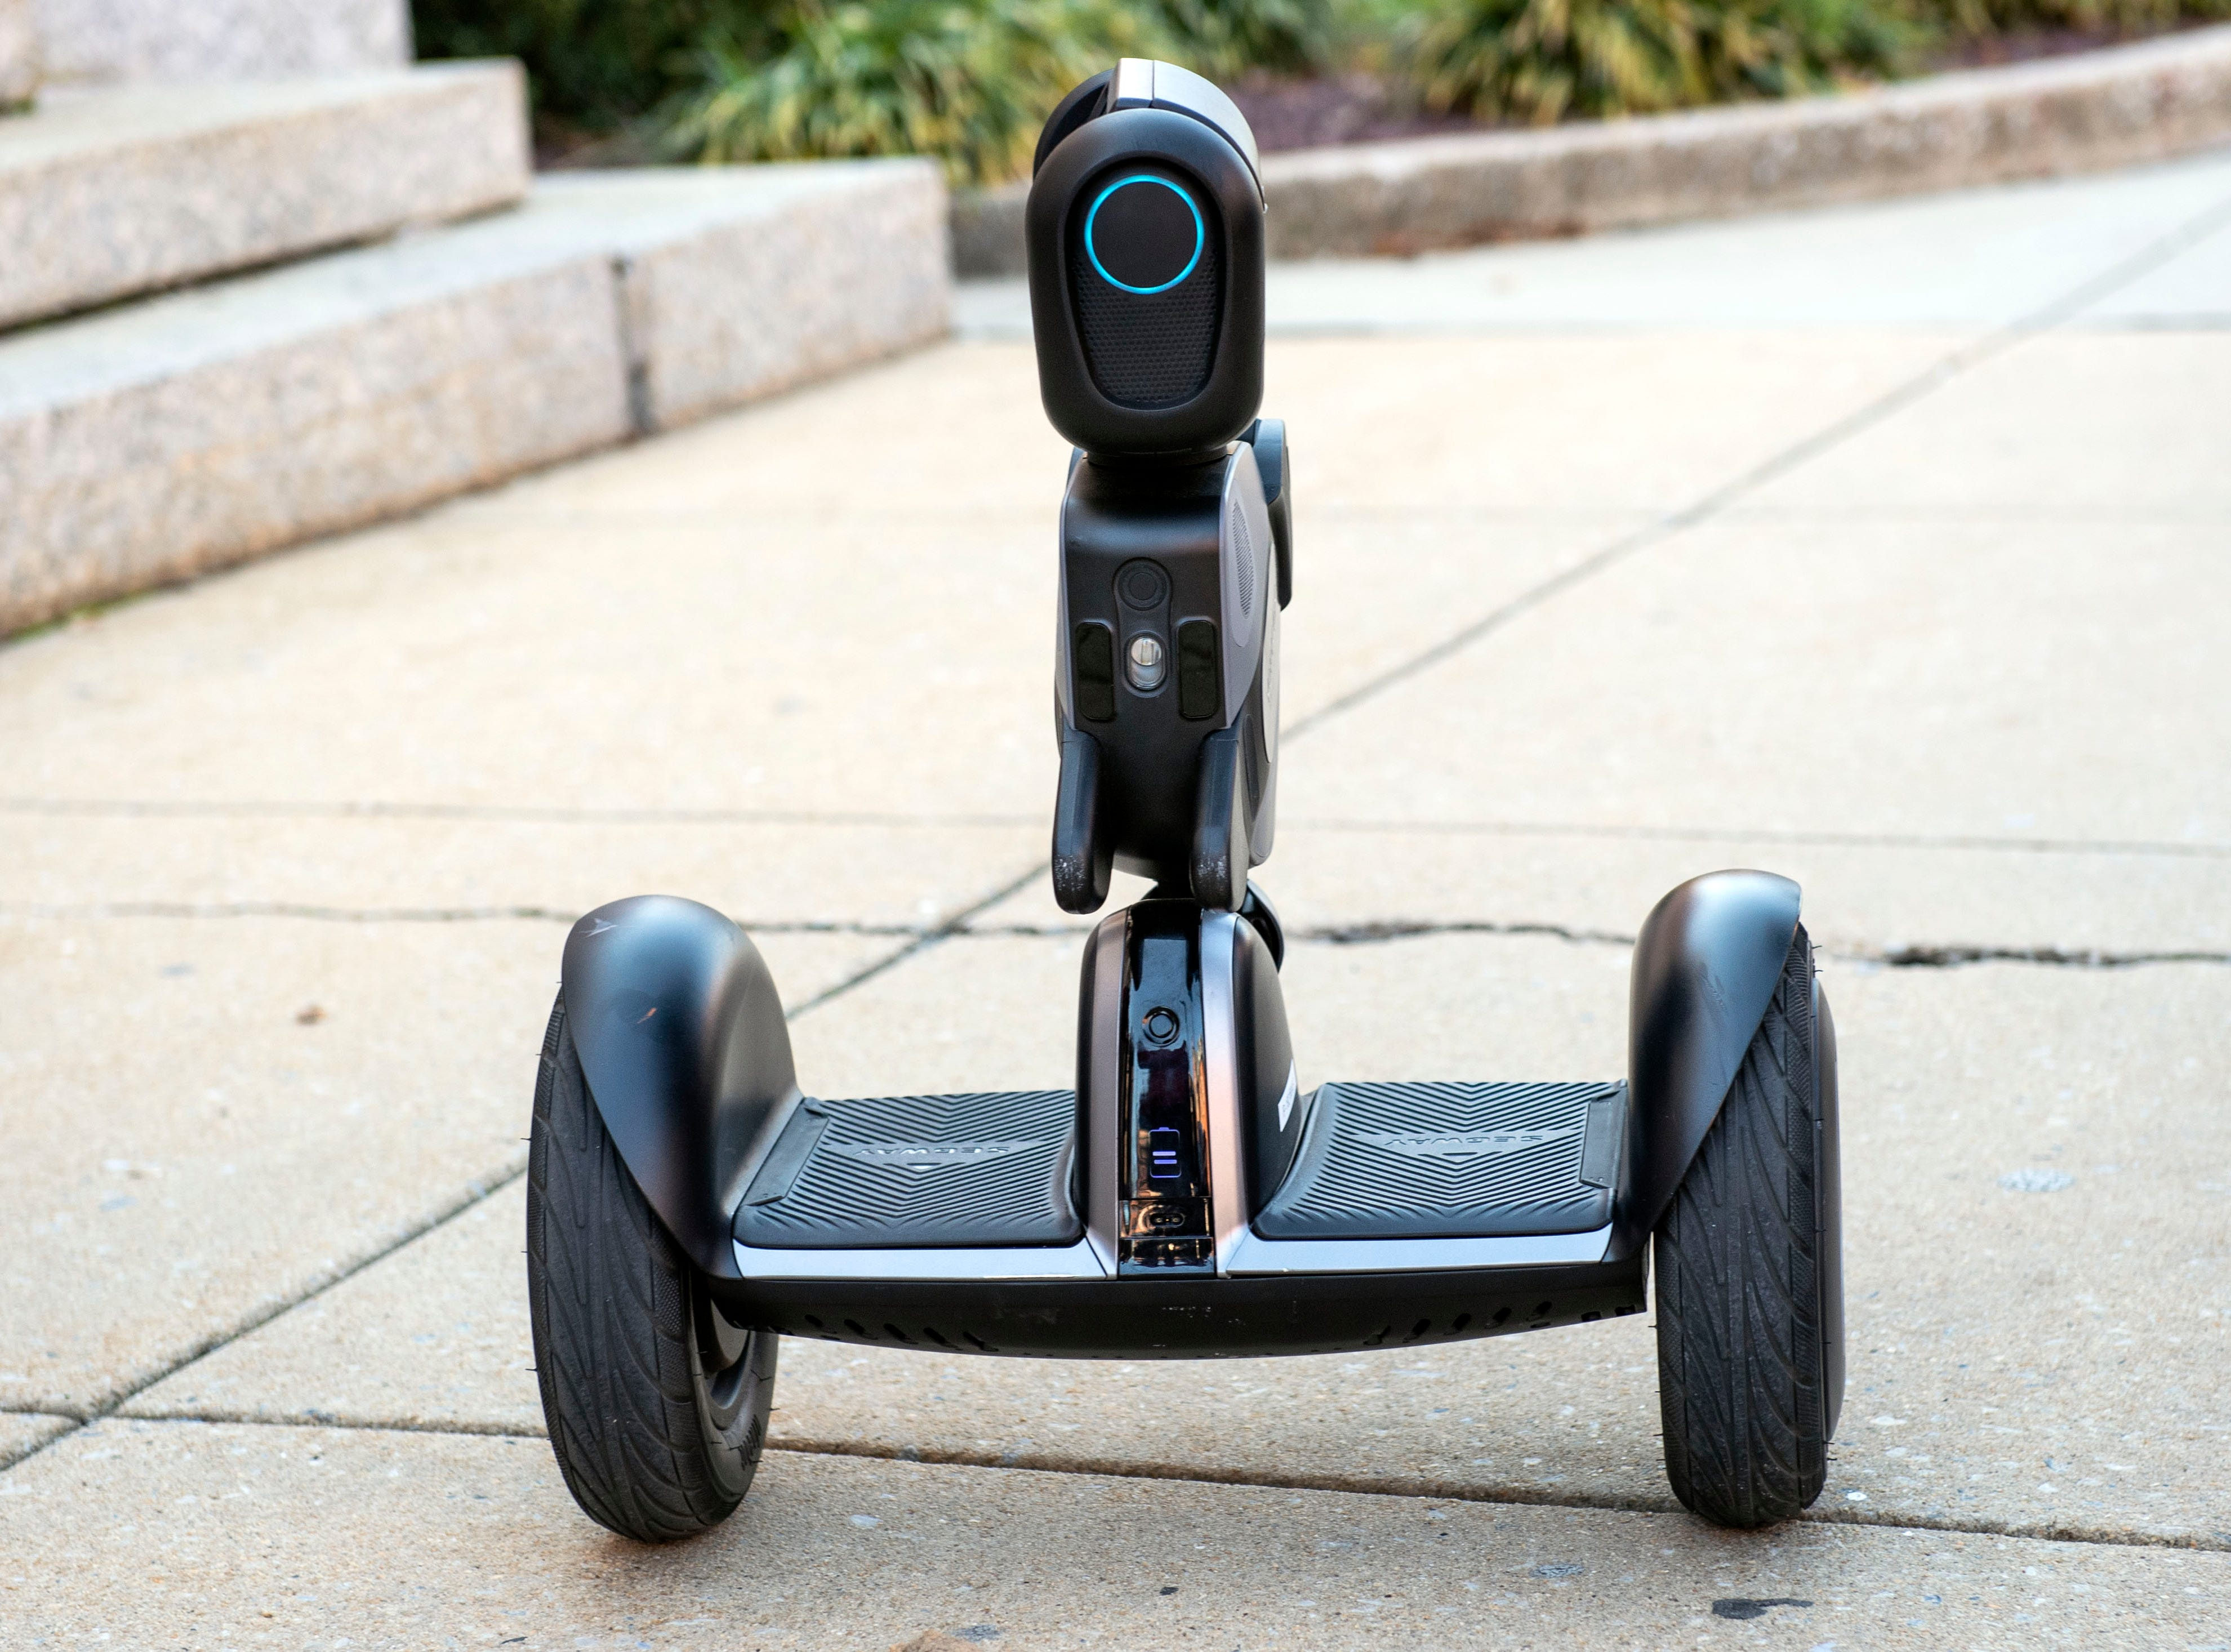 Some of the robot's features include two cameras, including a depth censor for 3DÊfacial recognition, autonomous following and some GPS capabilities. While in the early stages still, York Exponential CEO John McElligott said that the hope is the 'Loomo' will be able to recognize signs of a heart attack or a fight and be able to alert the right emergency responder.